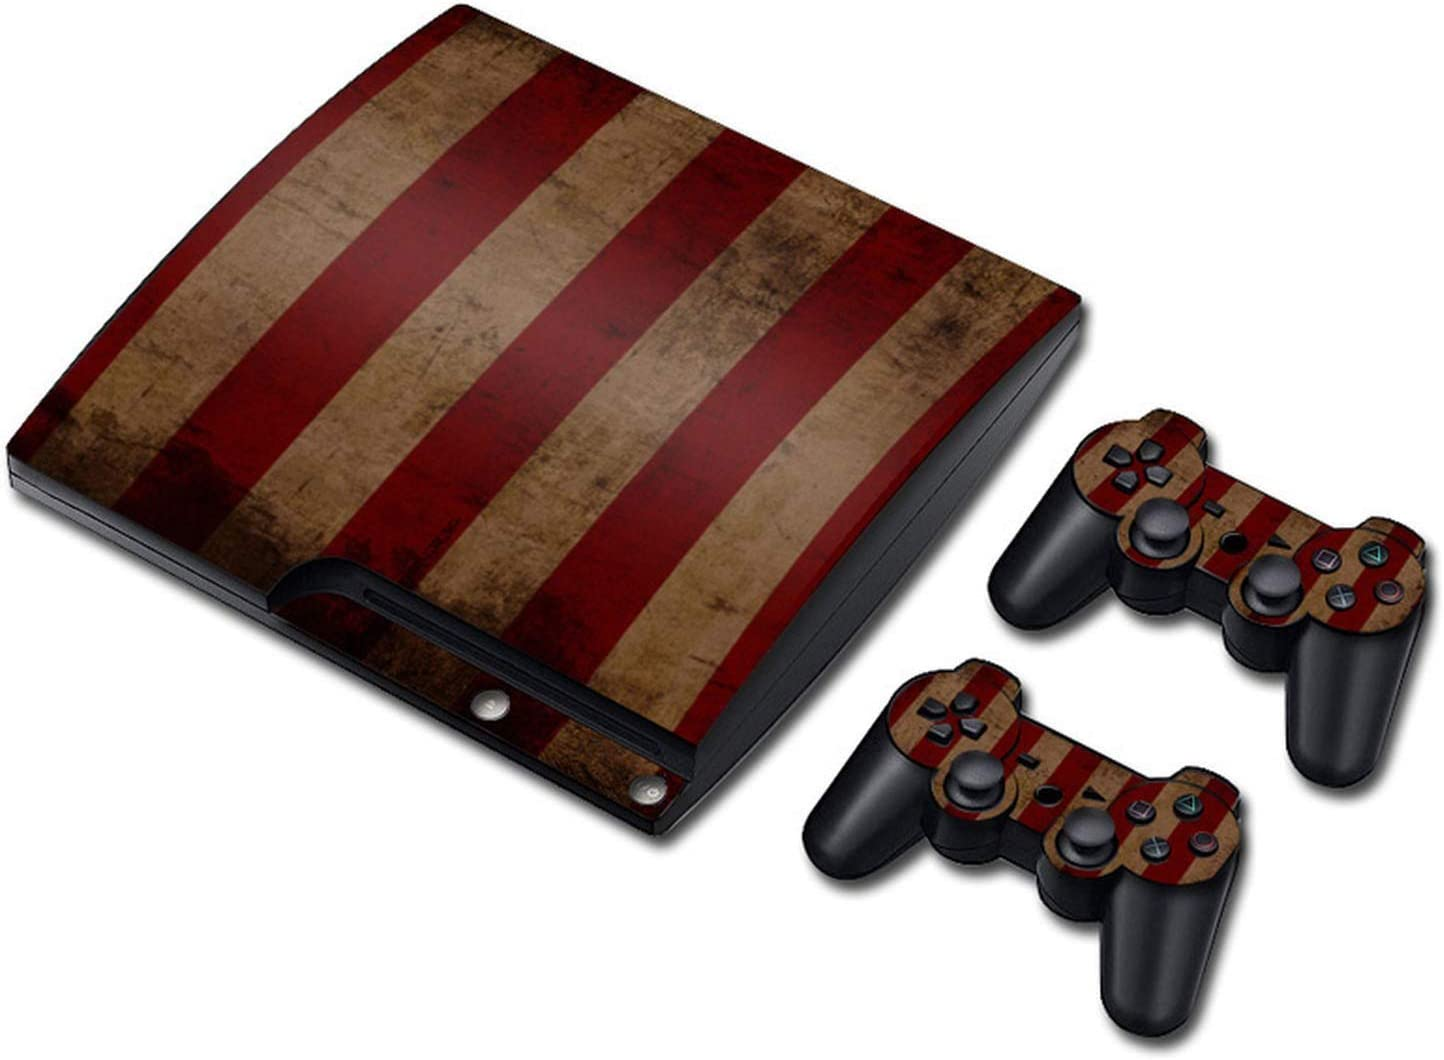 Amazon com: Decal skin cover Sticker vinyl pvc For Playstation 3